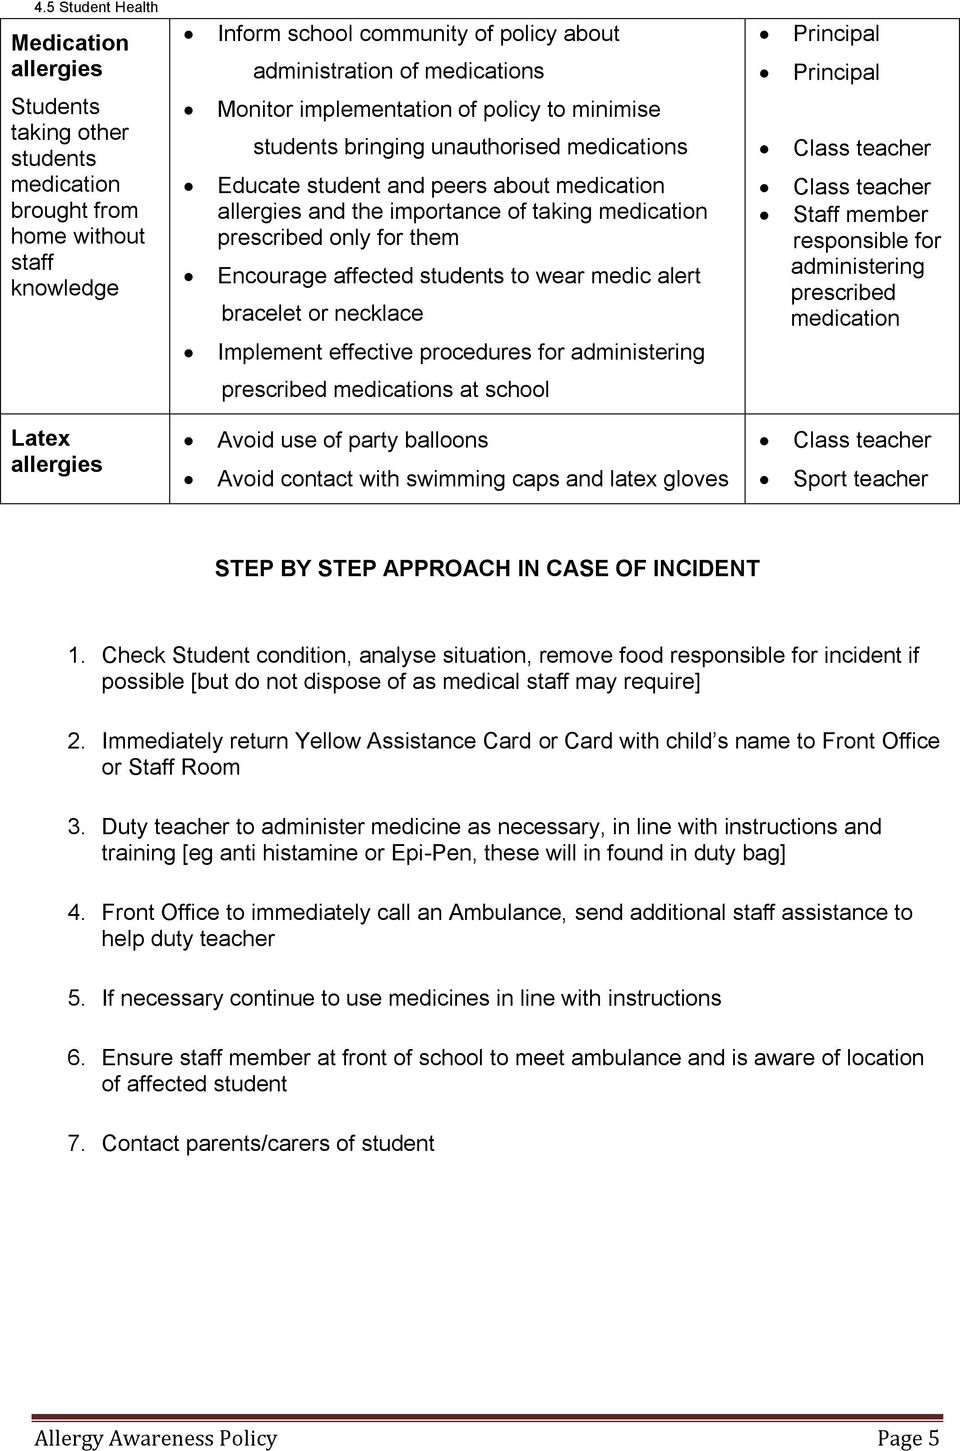 affected students to wear medic alert bracelet or necklace Implement effective procedures for administering Staff member responsible for administering prescribed medication prescribed medications at